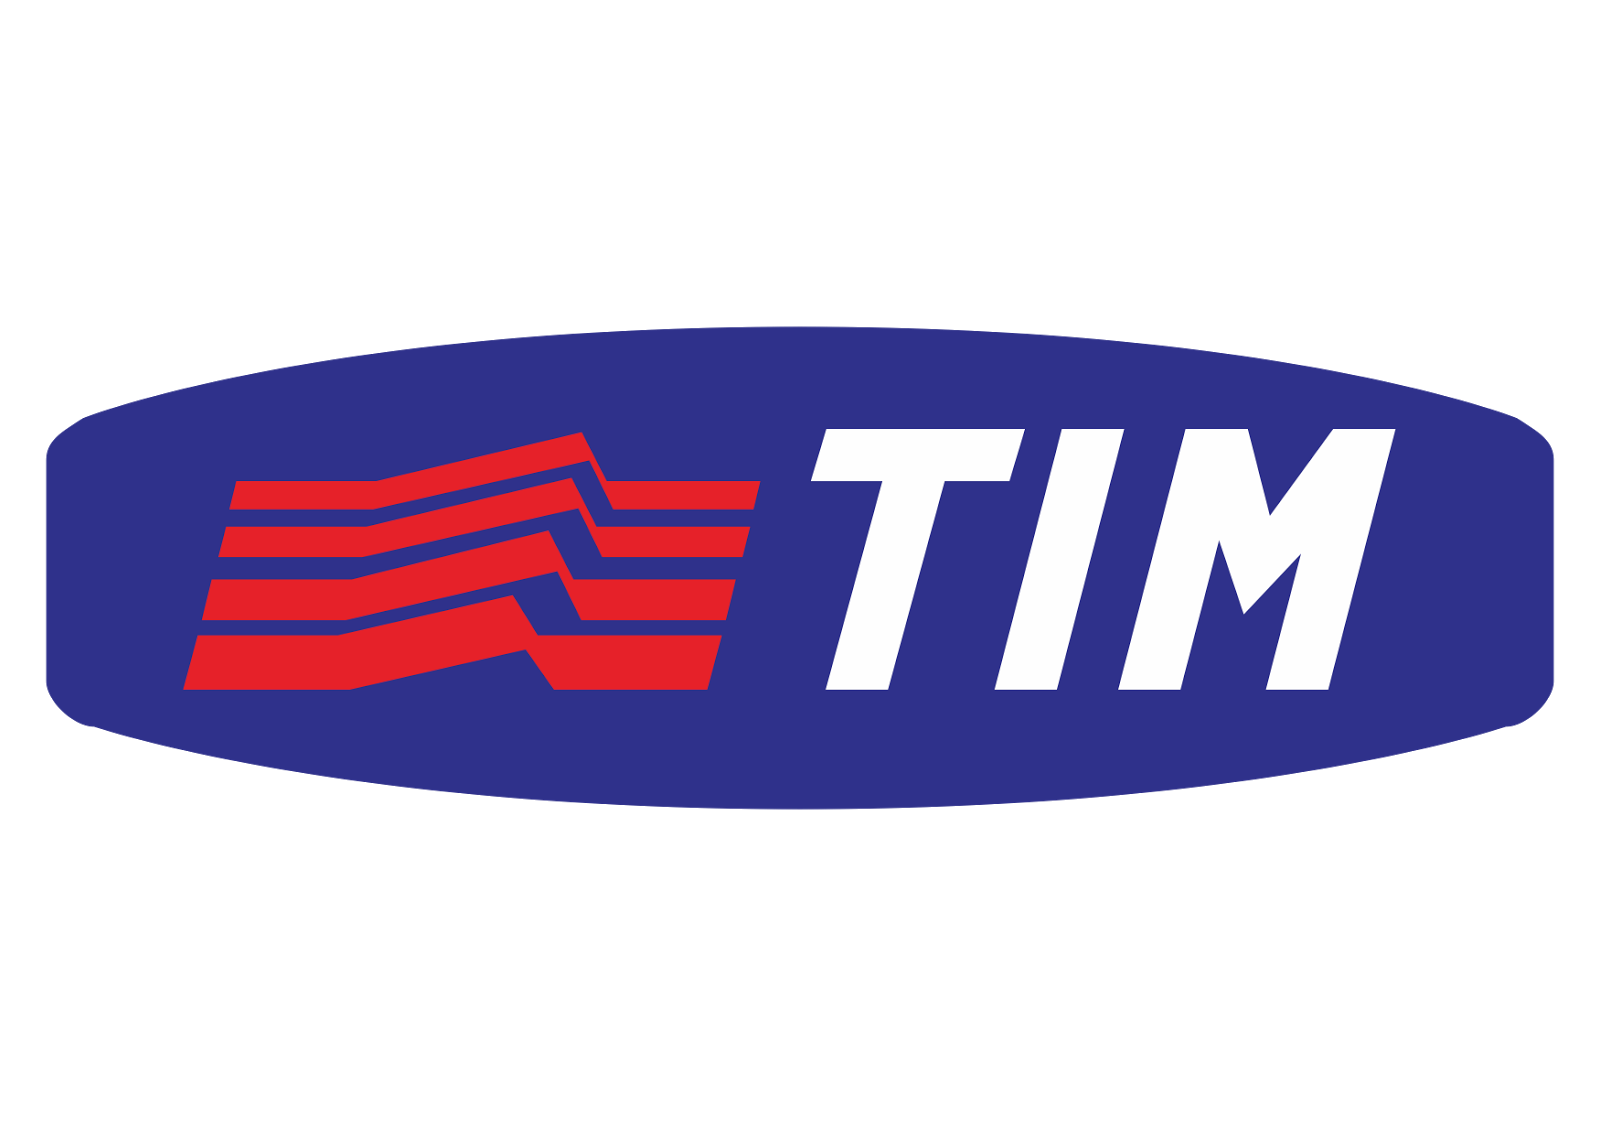 TIM Logo Vector download free